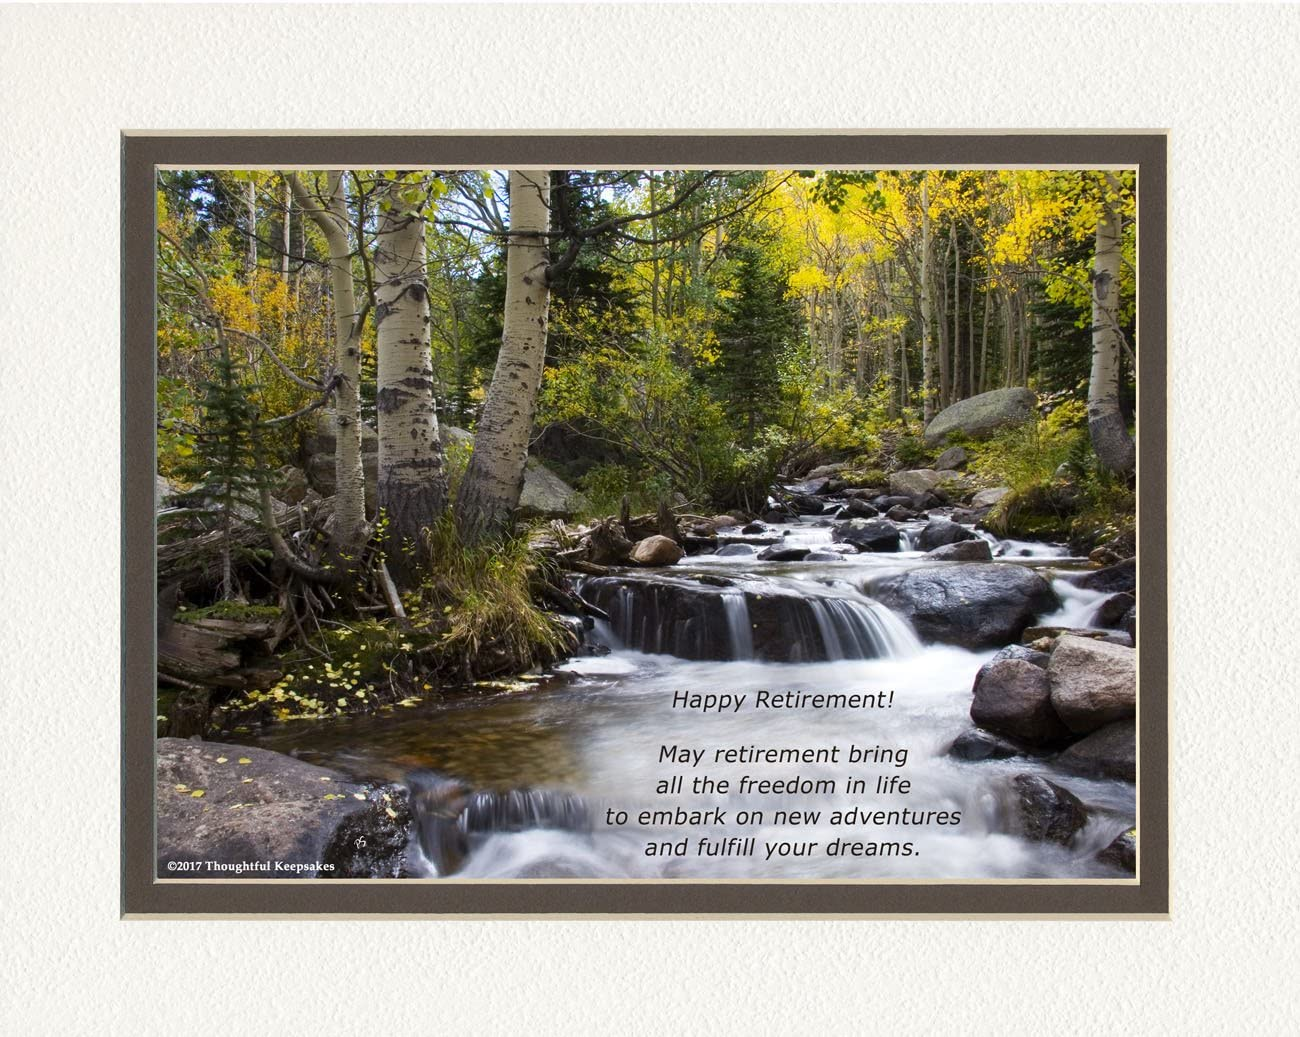 Retirement Gift. River Photo Attention brand with